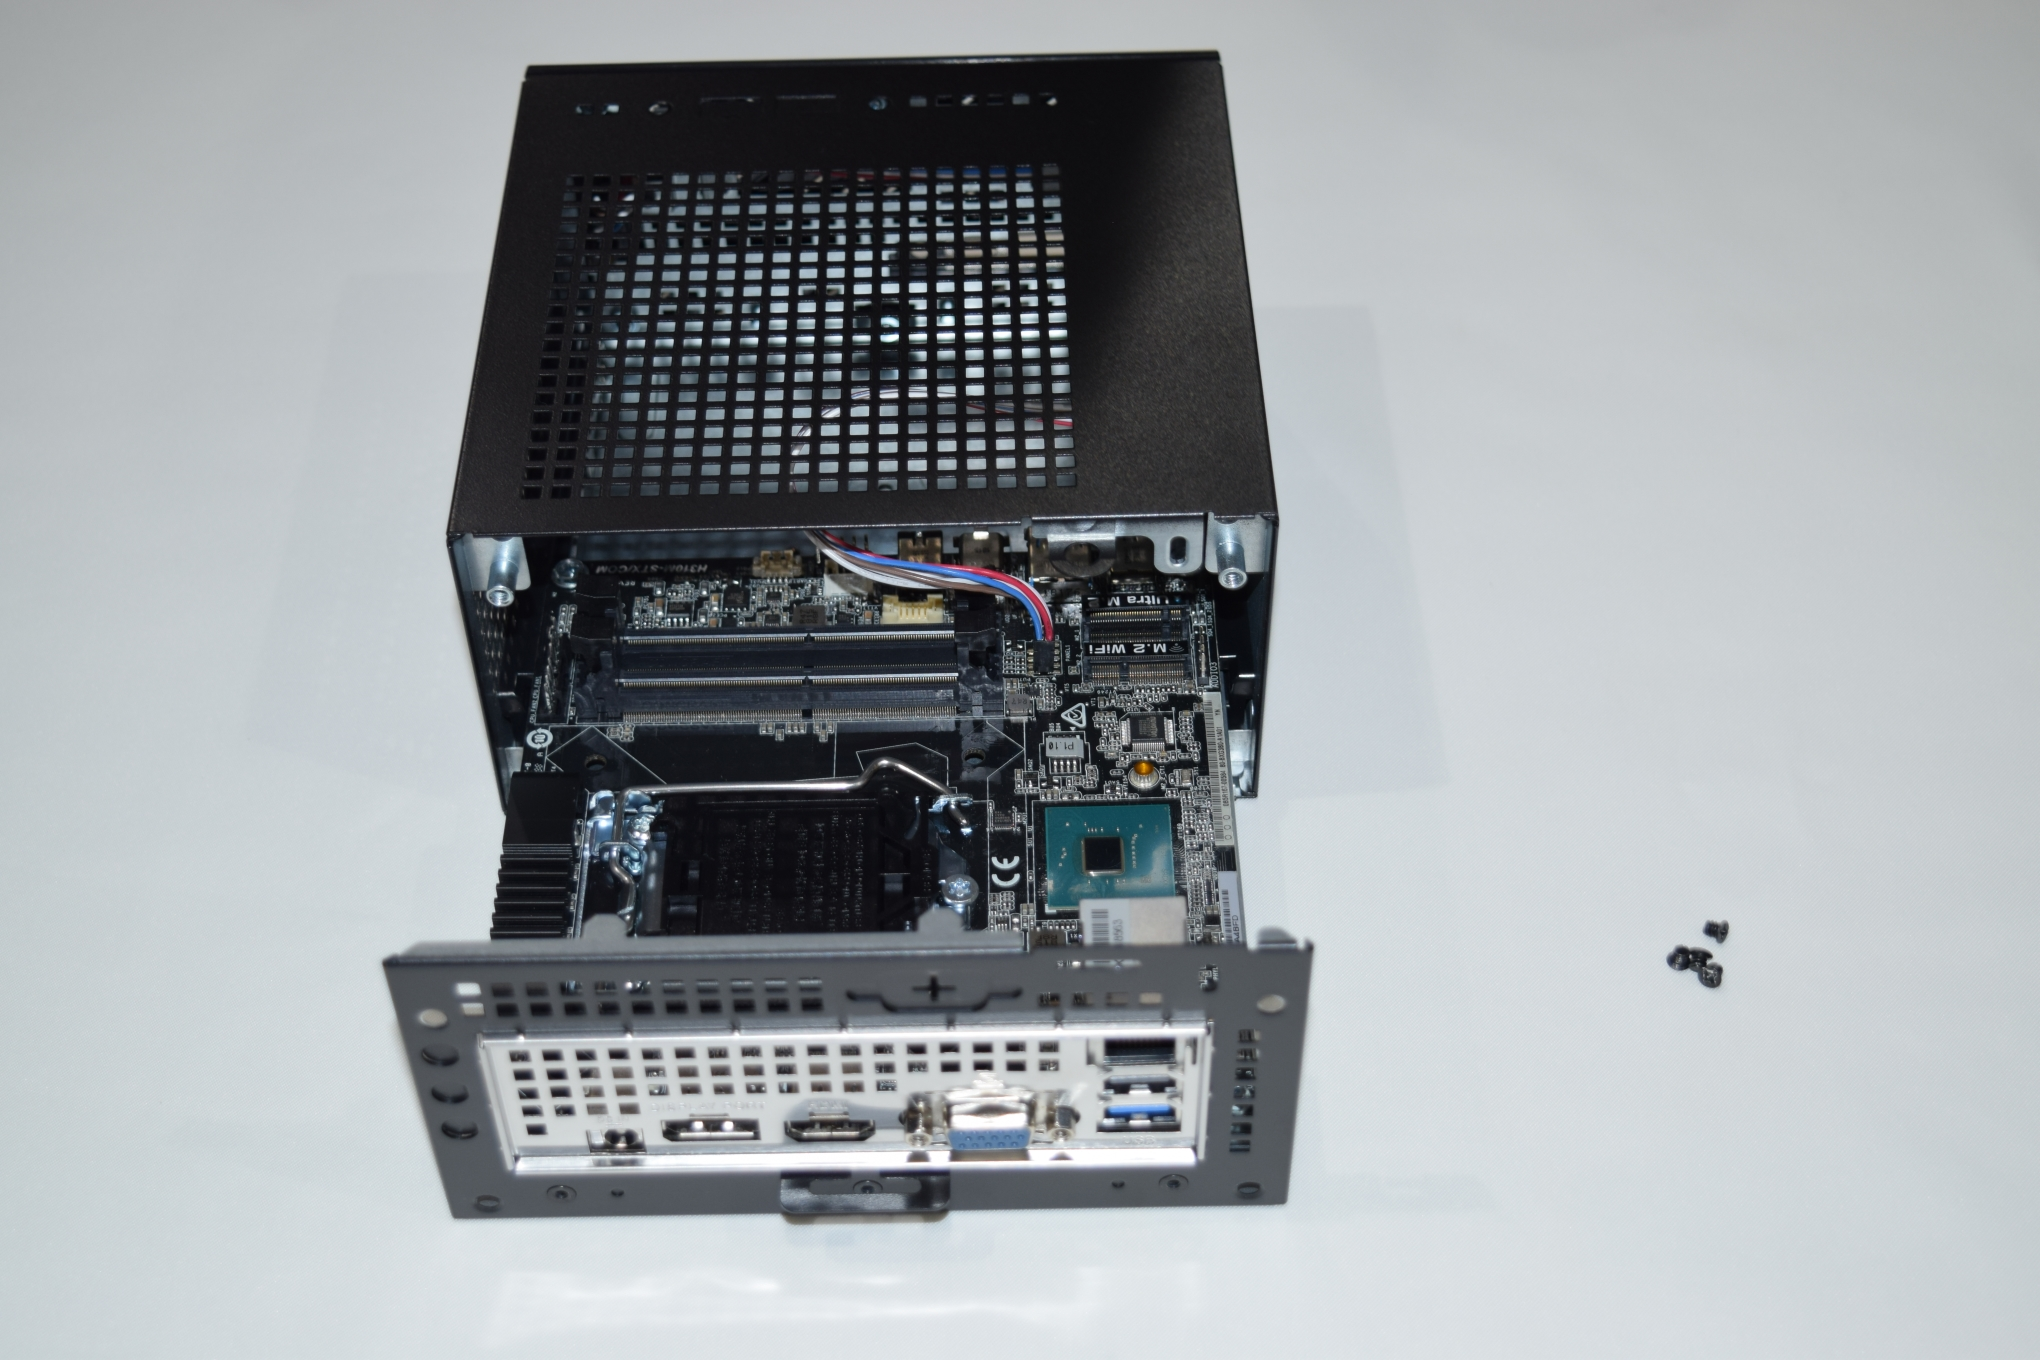 The ASRock DeskMini 310 Mini-PC Review: A Cost-Effective Mini-STX